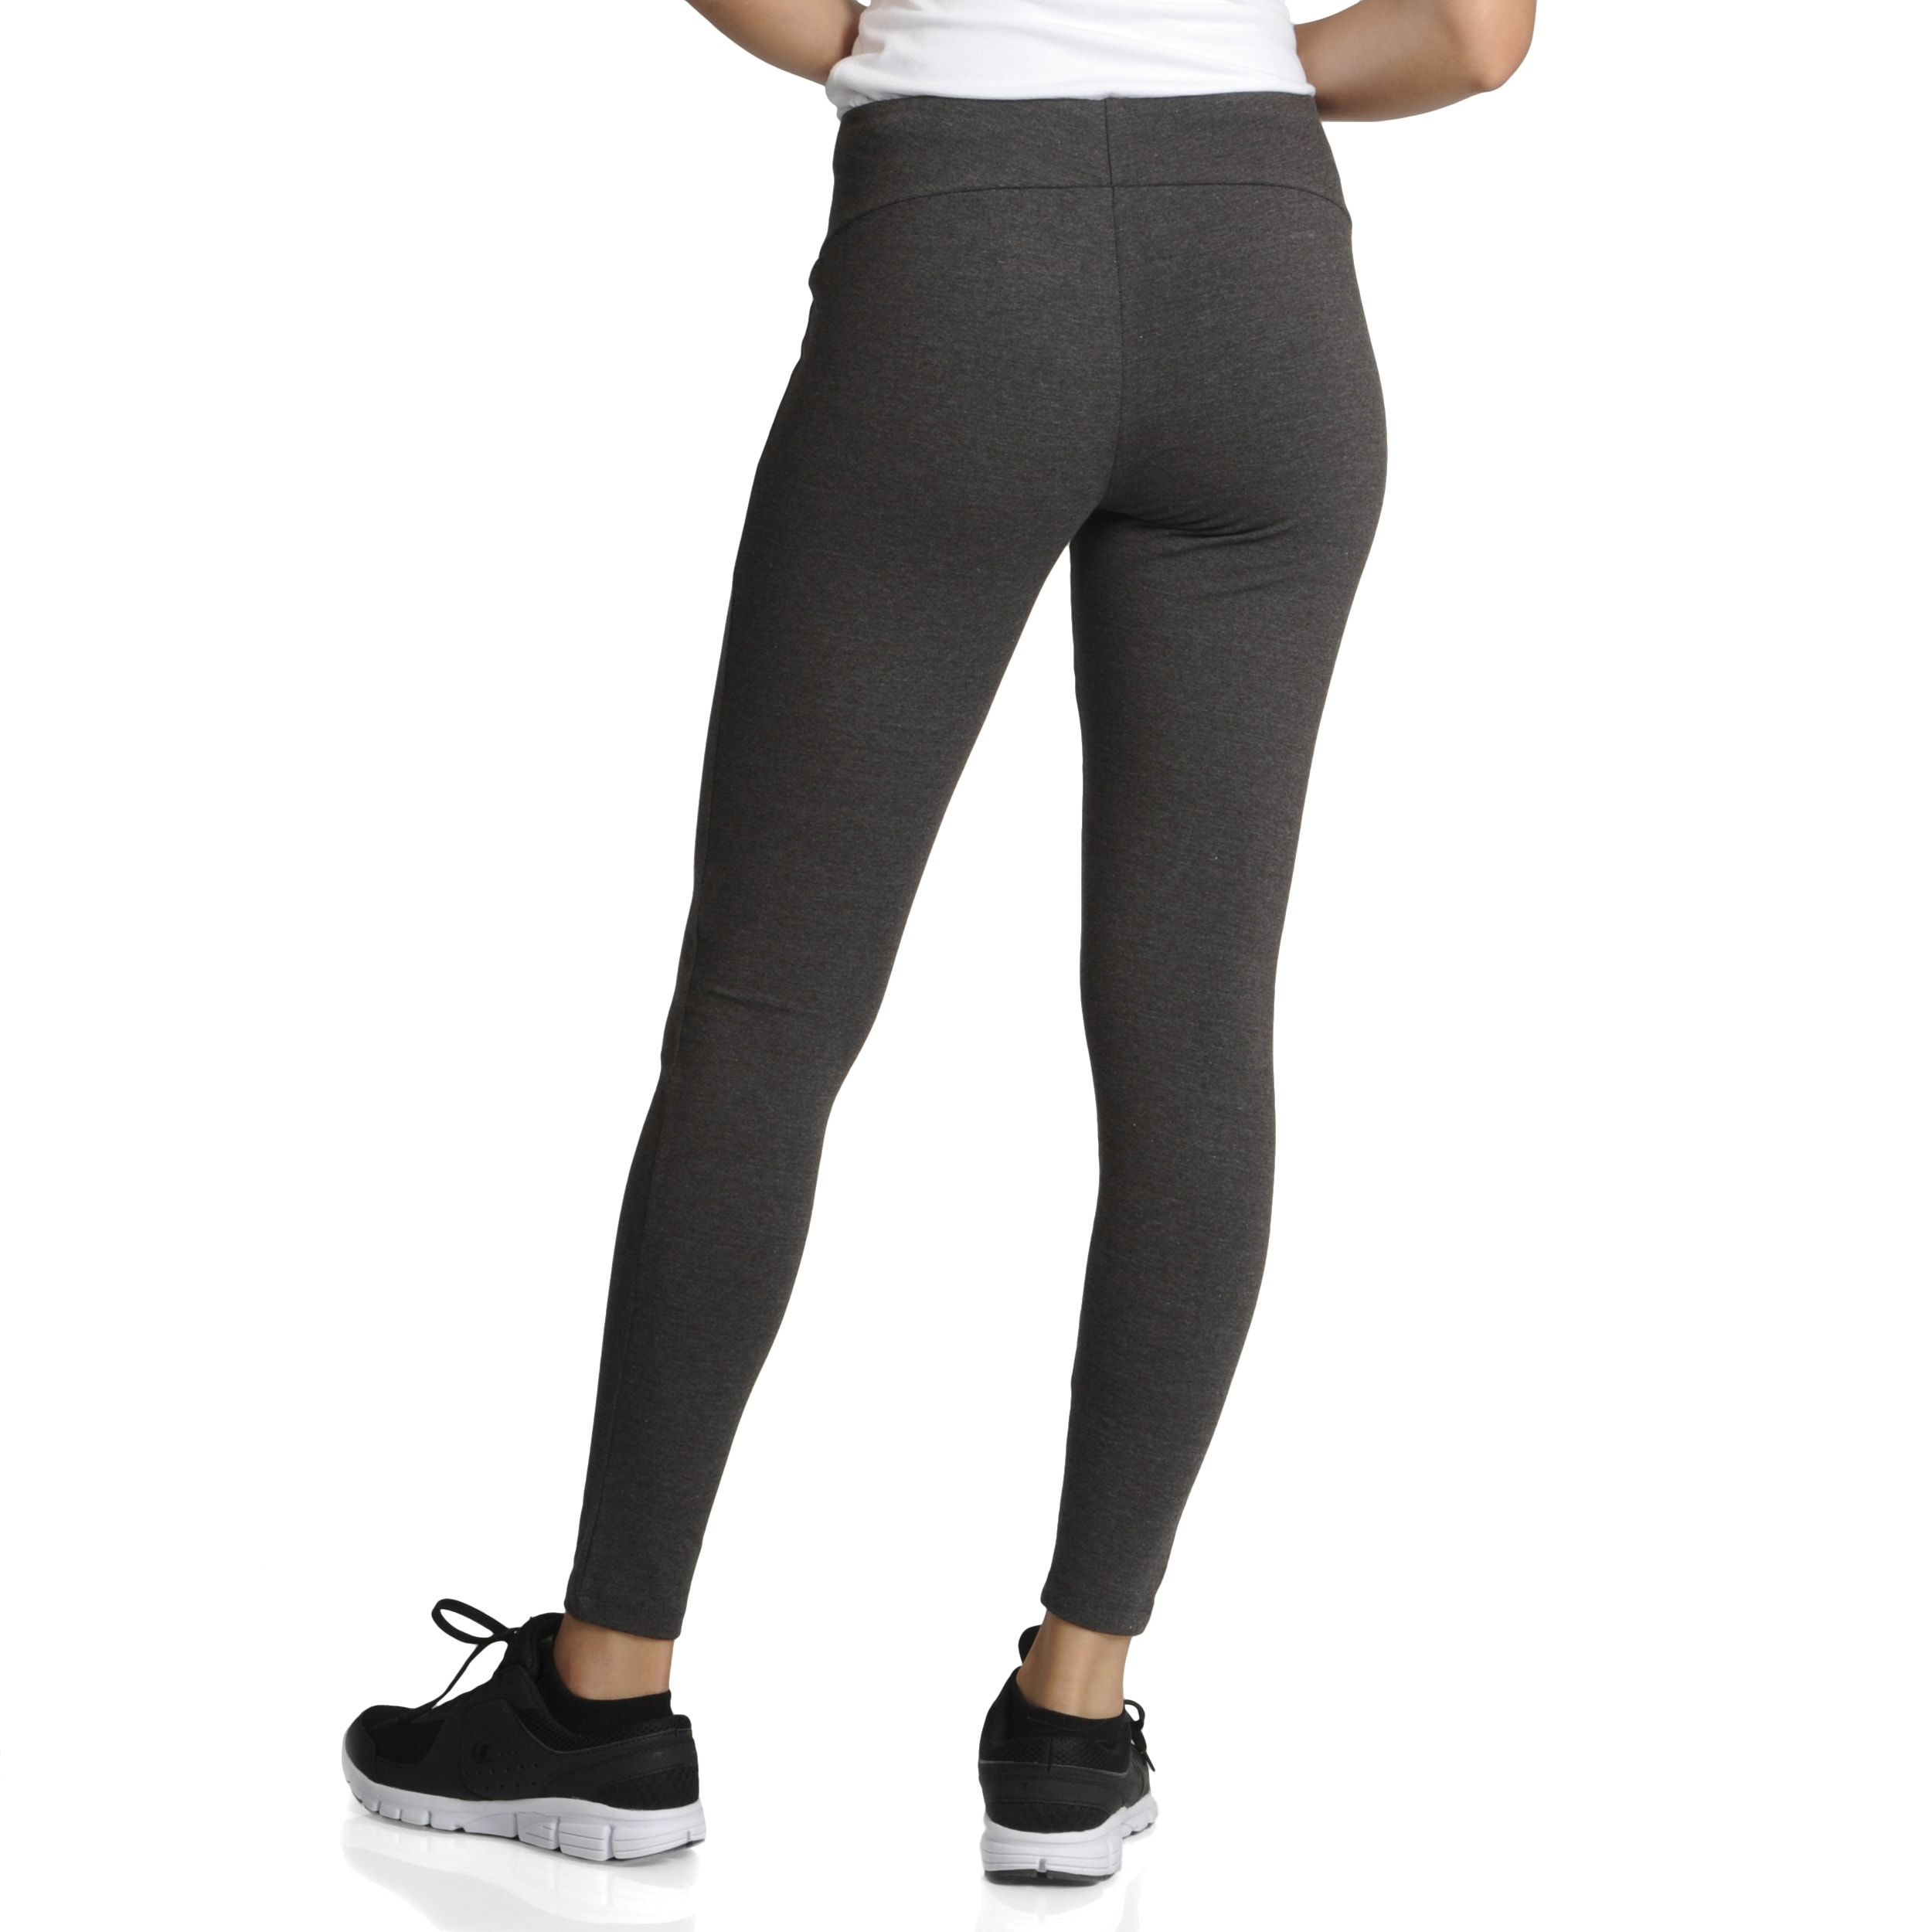 af6213c145 Shop Teez-Her Women s Full Length Leggings - Free Shipping On Orders Over   45 - Overstock - 8028383